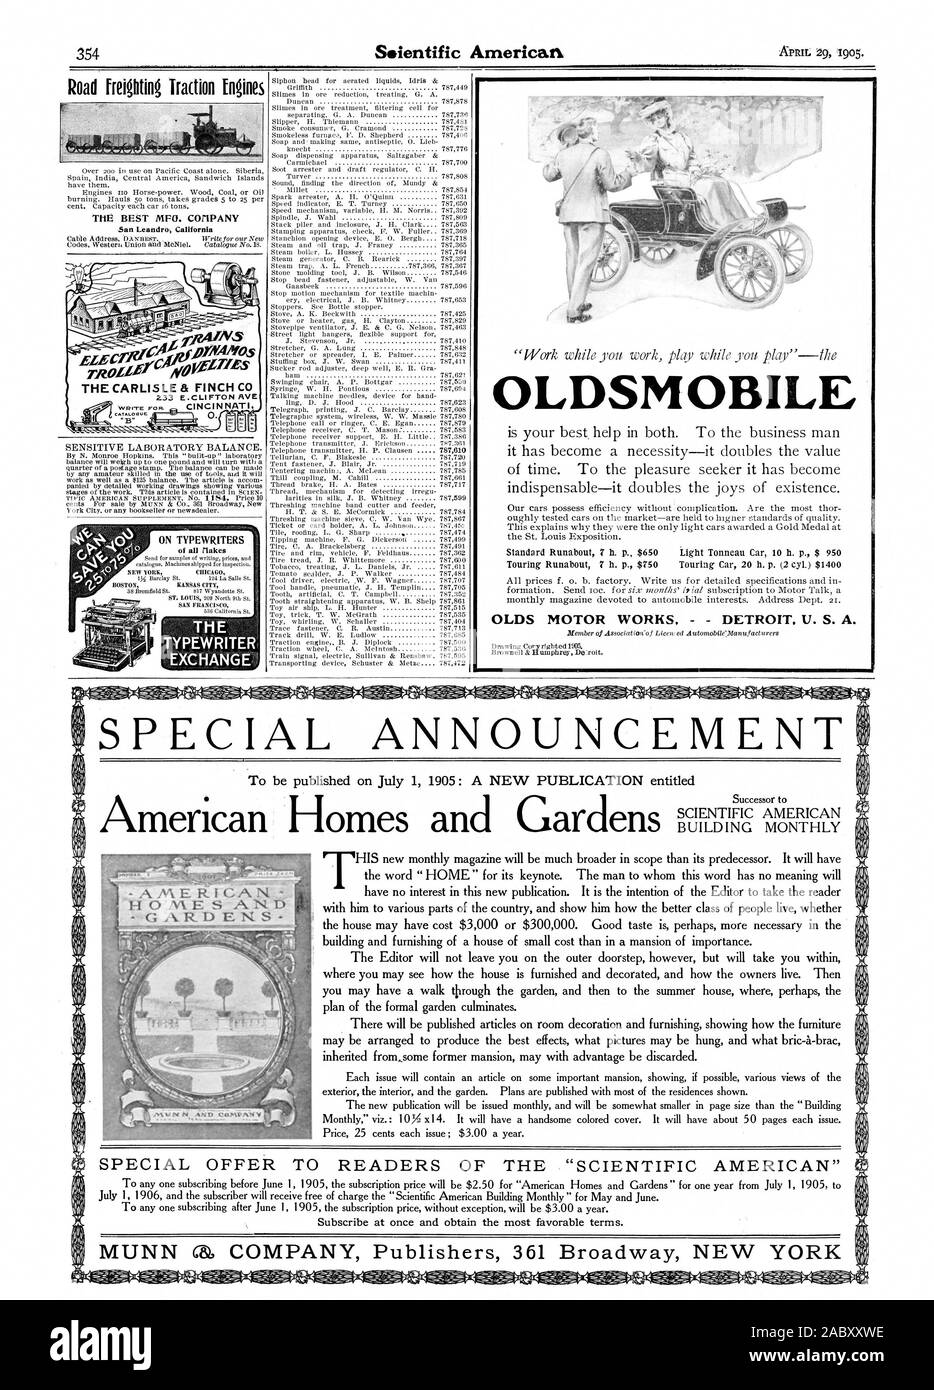 OLDSMOBILE OLDS MOTOR WORKS DETROIT U. S. A. Drawing Cory righted 1905. Road freighting Traction Mines Over zoo in use on Pacific Coast alone. Siberia Spain India Central America Sandwich Islands have them. Engines Ito Horse-power. Wood Coal or Oil burning. Hauls 50 tons takes grades 5 to 25 per cent. Capacity each car 16 tons. San Leandro. California balance win weigh up to one pound and will turn with a by any amateur skilled in the use of tools and it will work as well as a $125 balance. The article is accom panied by detailed working drawings showing various York City or any bookseller or Stock Photo